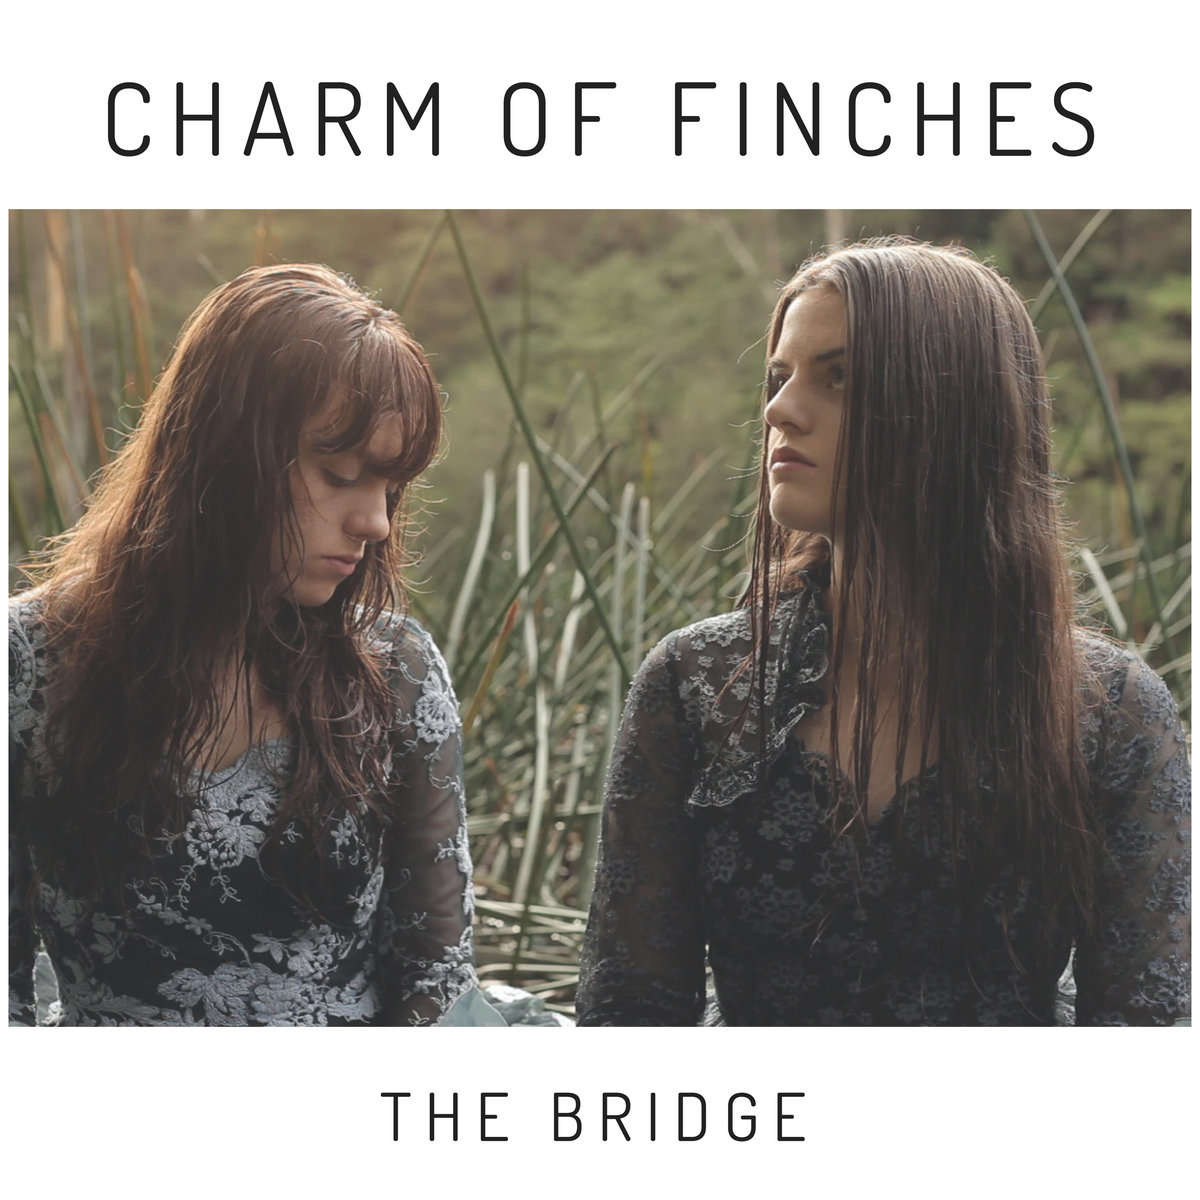 The Bridge by Charm of Finches